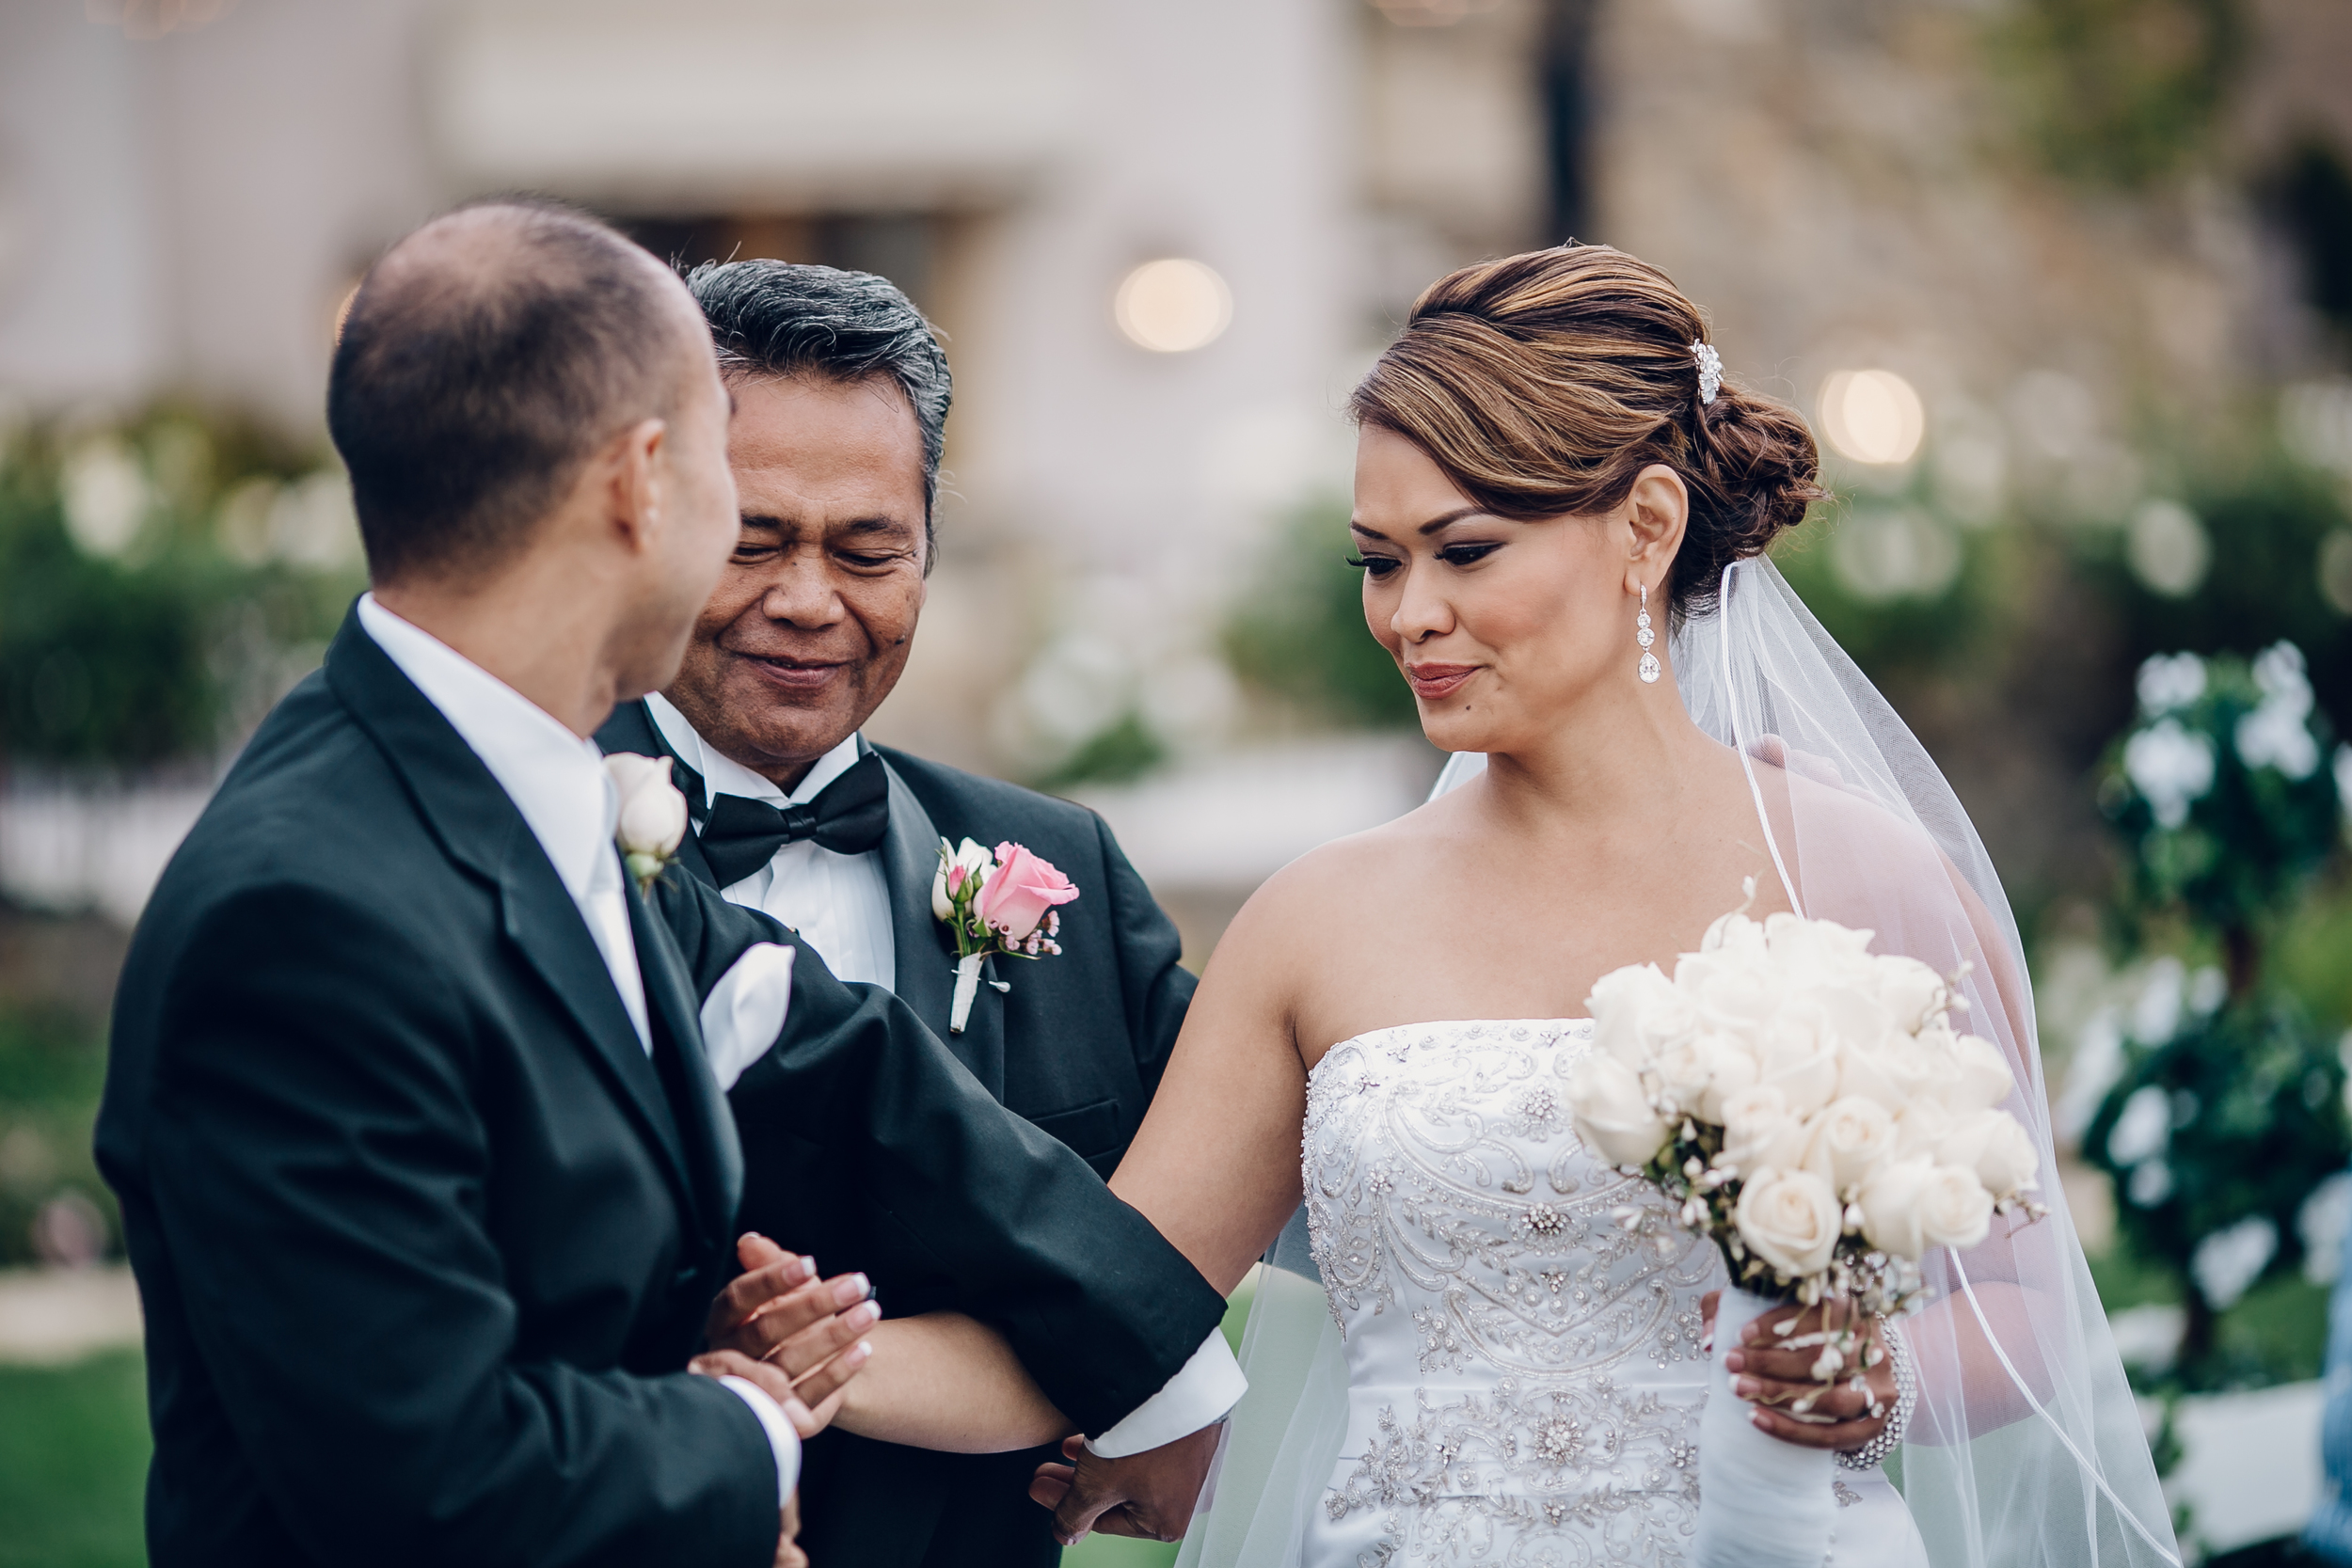 Shiela + Lester's Wedding 9-30-15 112-Edit.jpg